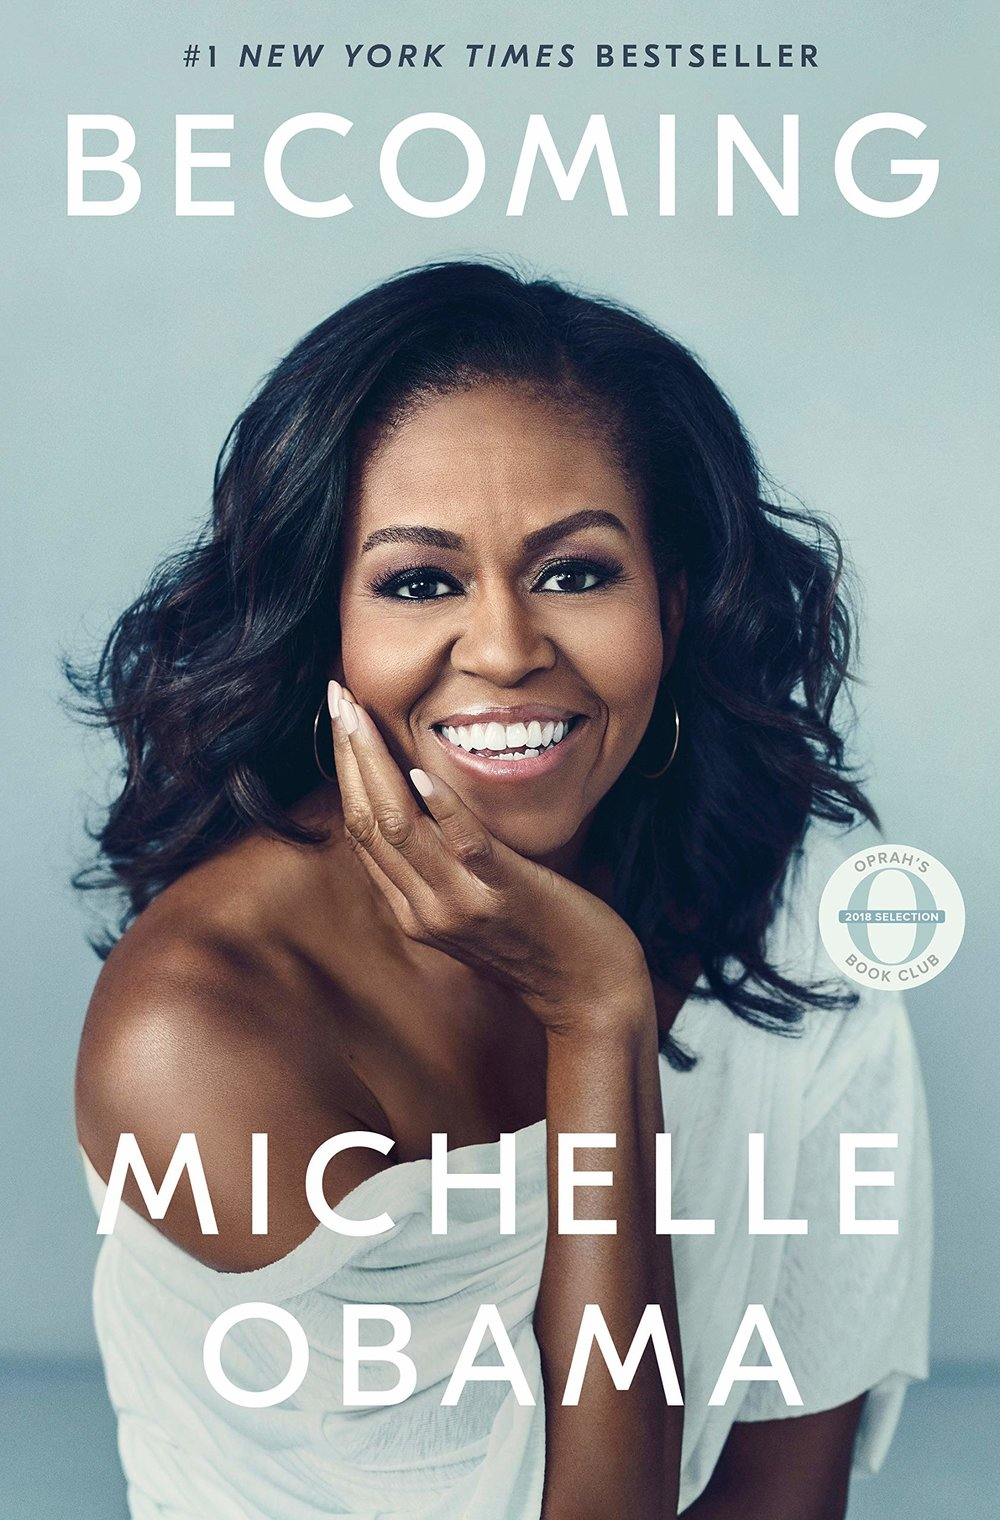 BECOMING - Michelle Obama is just amazing and everybody's favorite imaginary aunty. She tells her life story in her book 'Becoming' and I seriously can't wait to be inspired